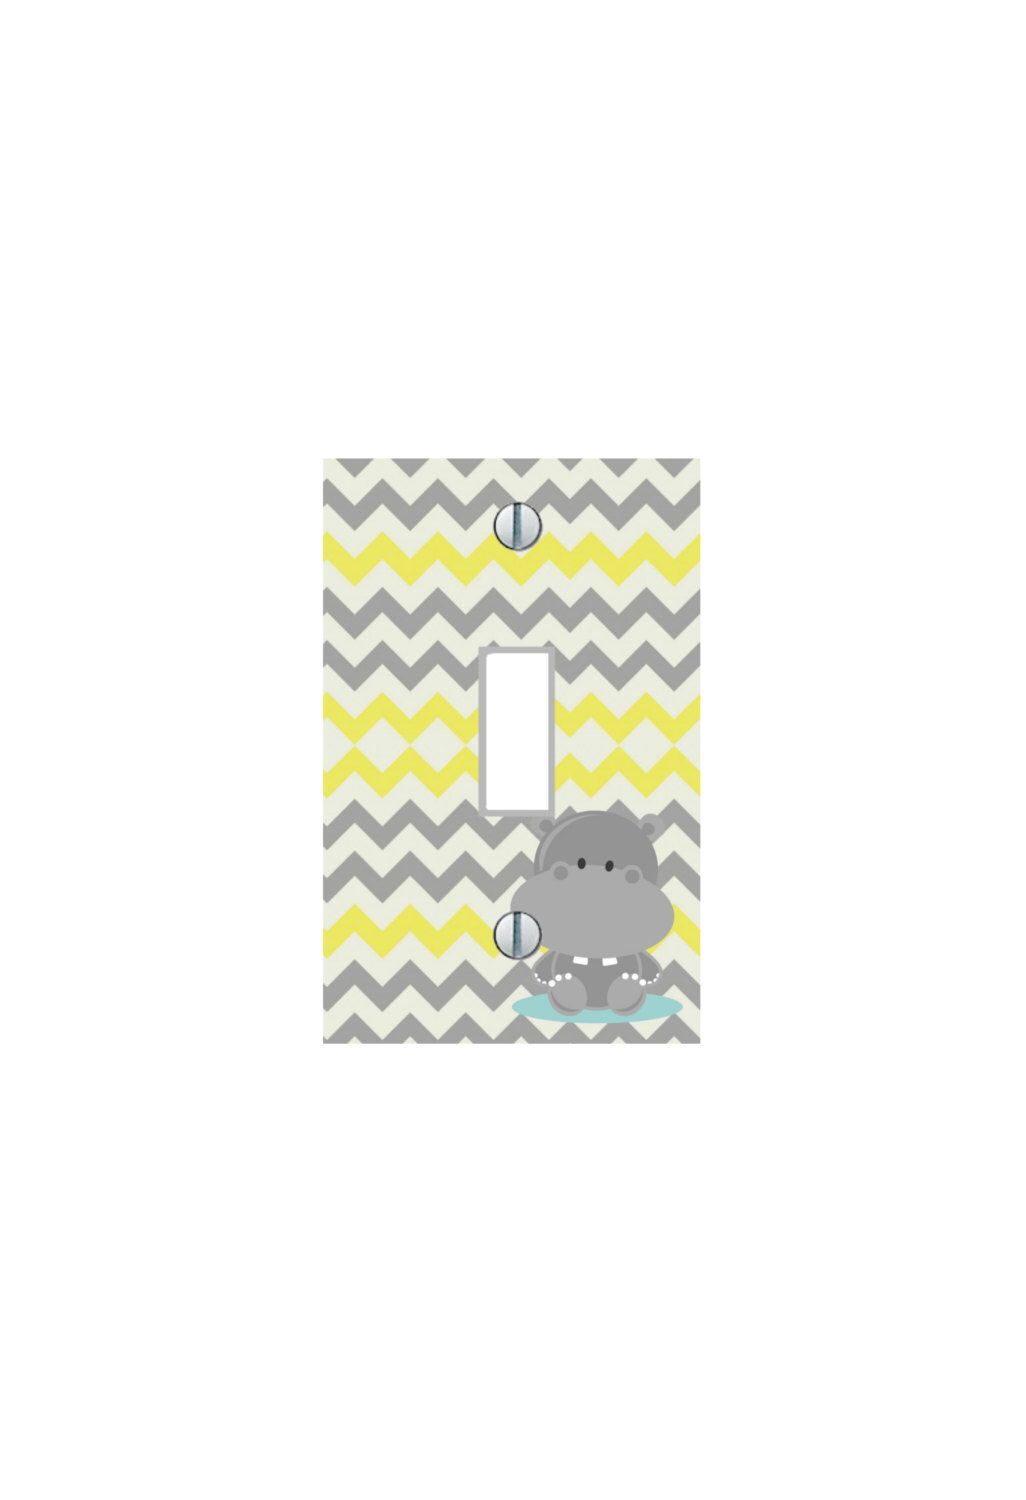 Wondrous Pin By Meryssa Downer On Baby Yellow Chevron Switch Plate Download Free Architecture Designs Meptaeticmadebymaigaardcom